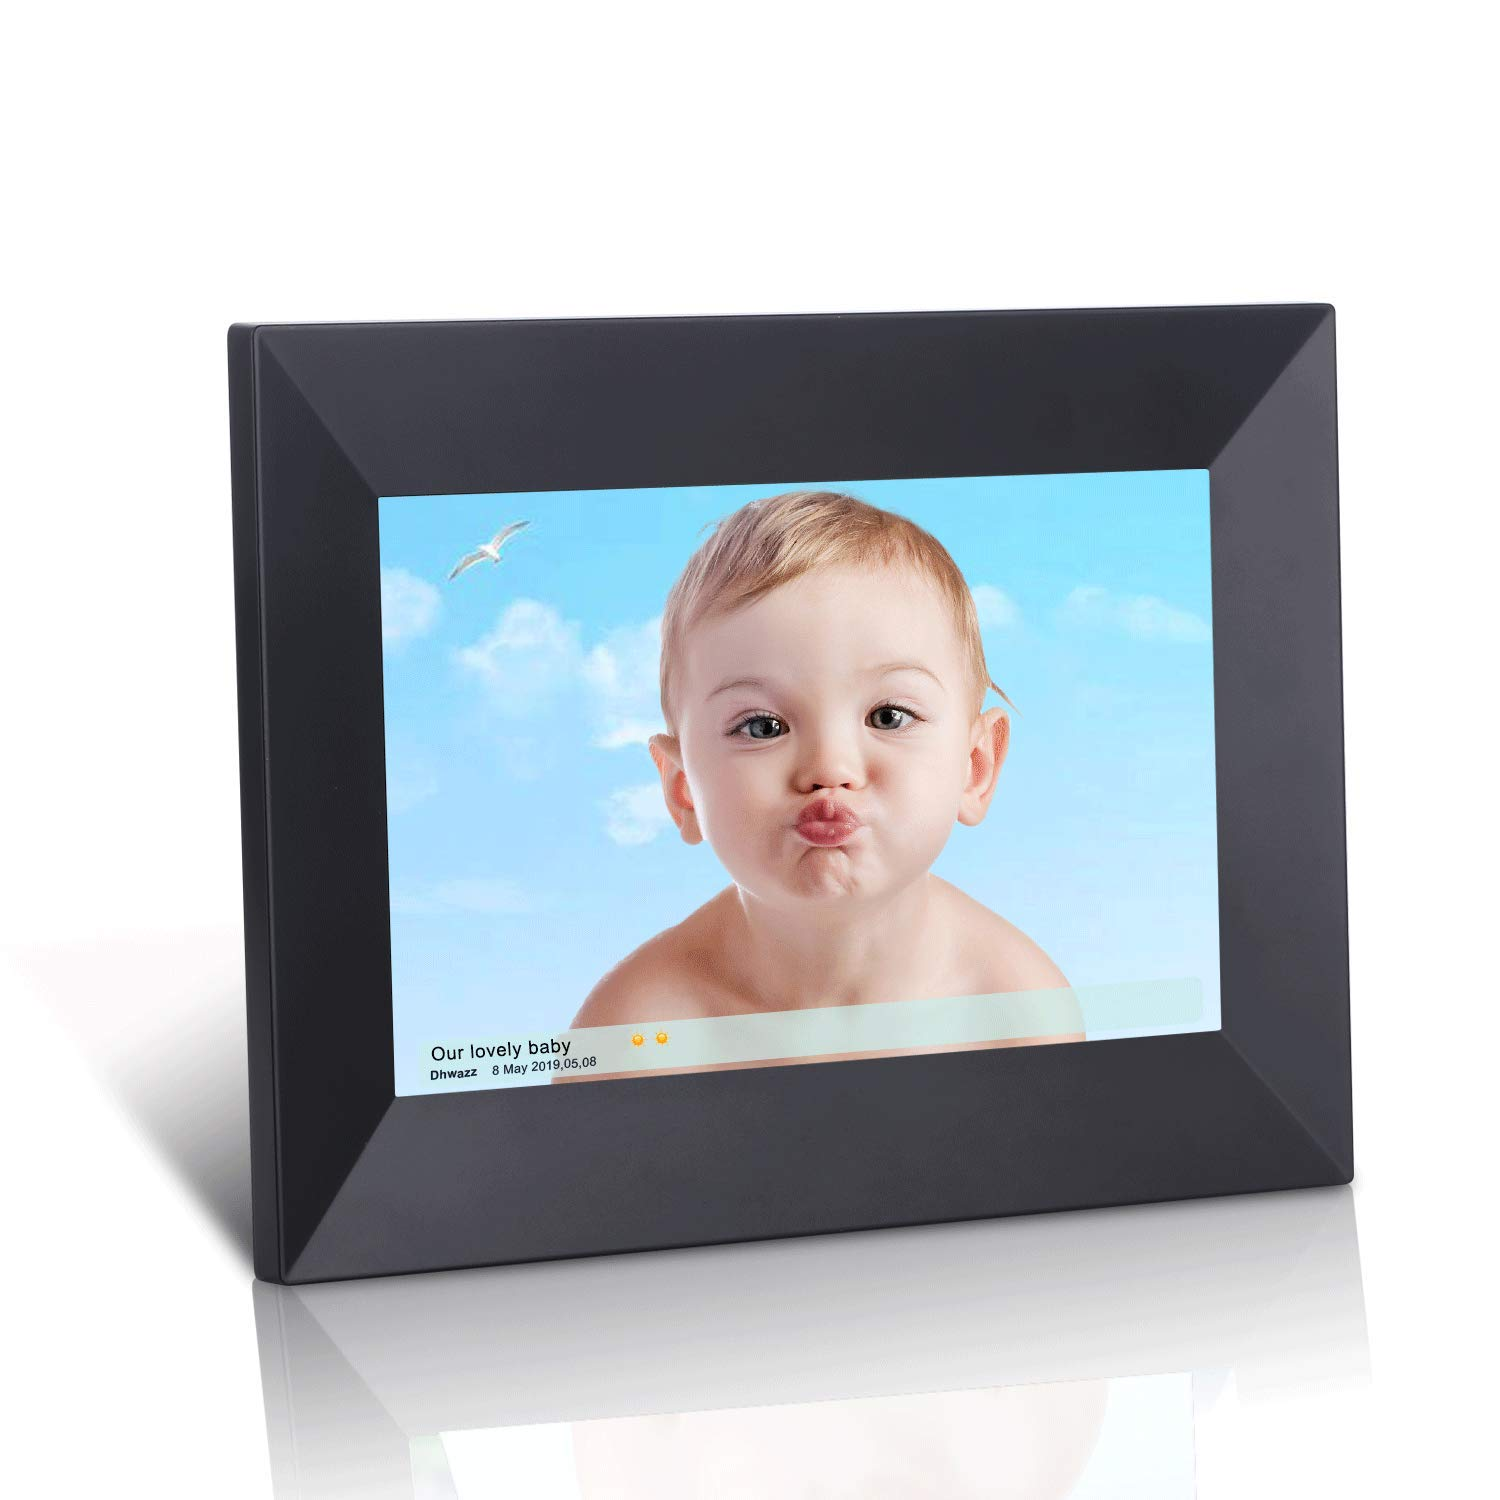 Dhwazz 8 Inch WiFi Digital Photo Frame, IPS Electronic Picture Frame with LCD Touch Screen, 8GB Internal Storage, Wall-Mountable, Display and Share Photos Instantly via Mobile APP by Dhwazz (Image #1)